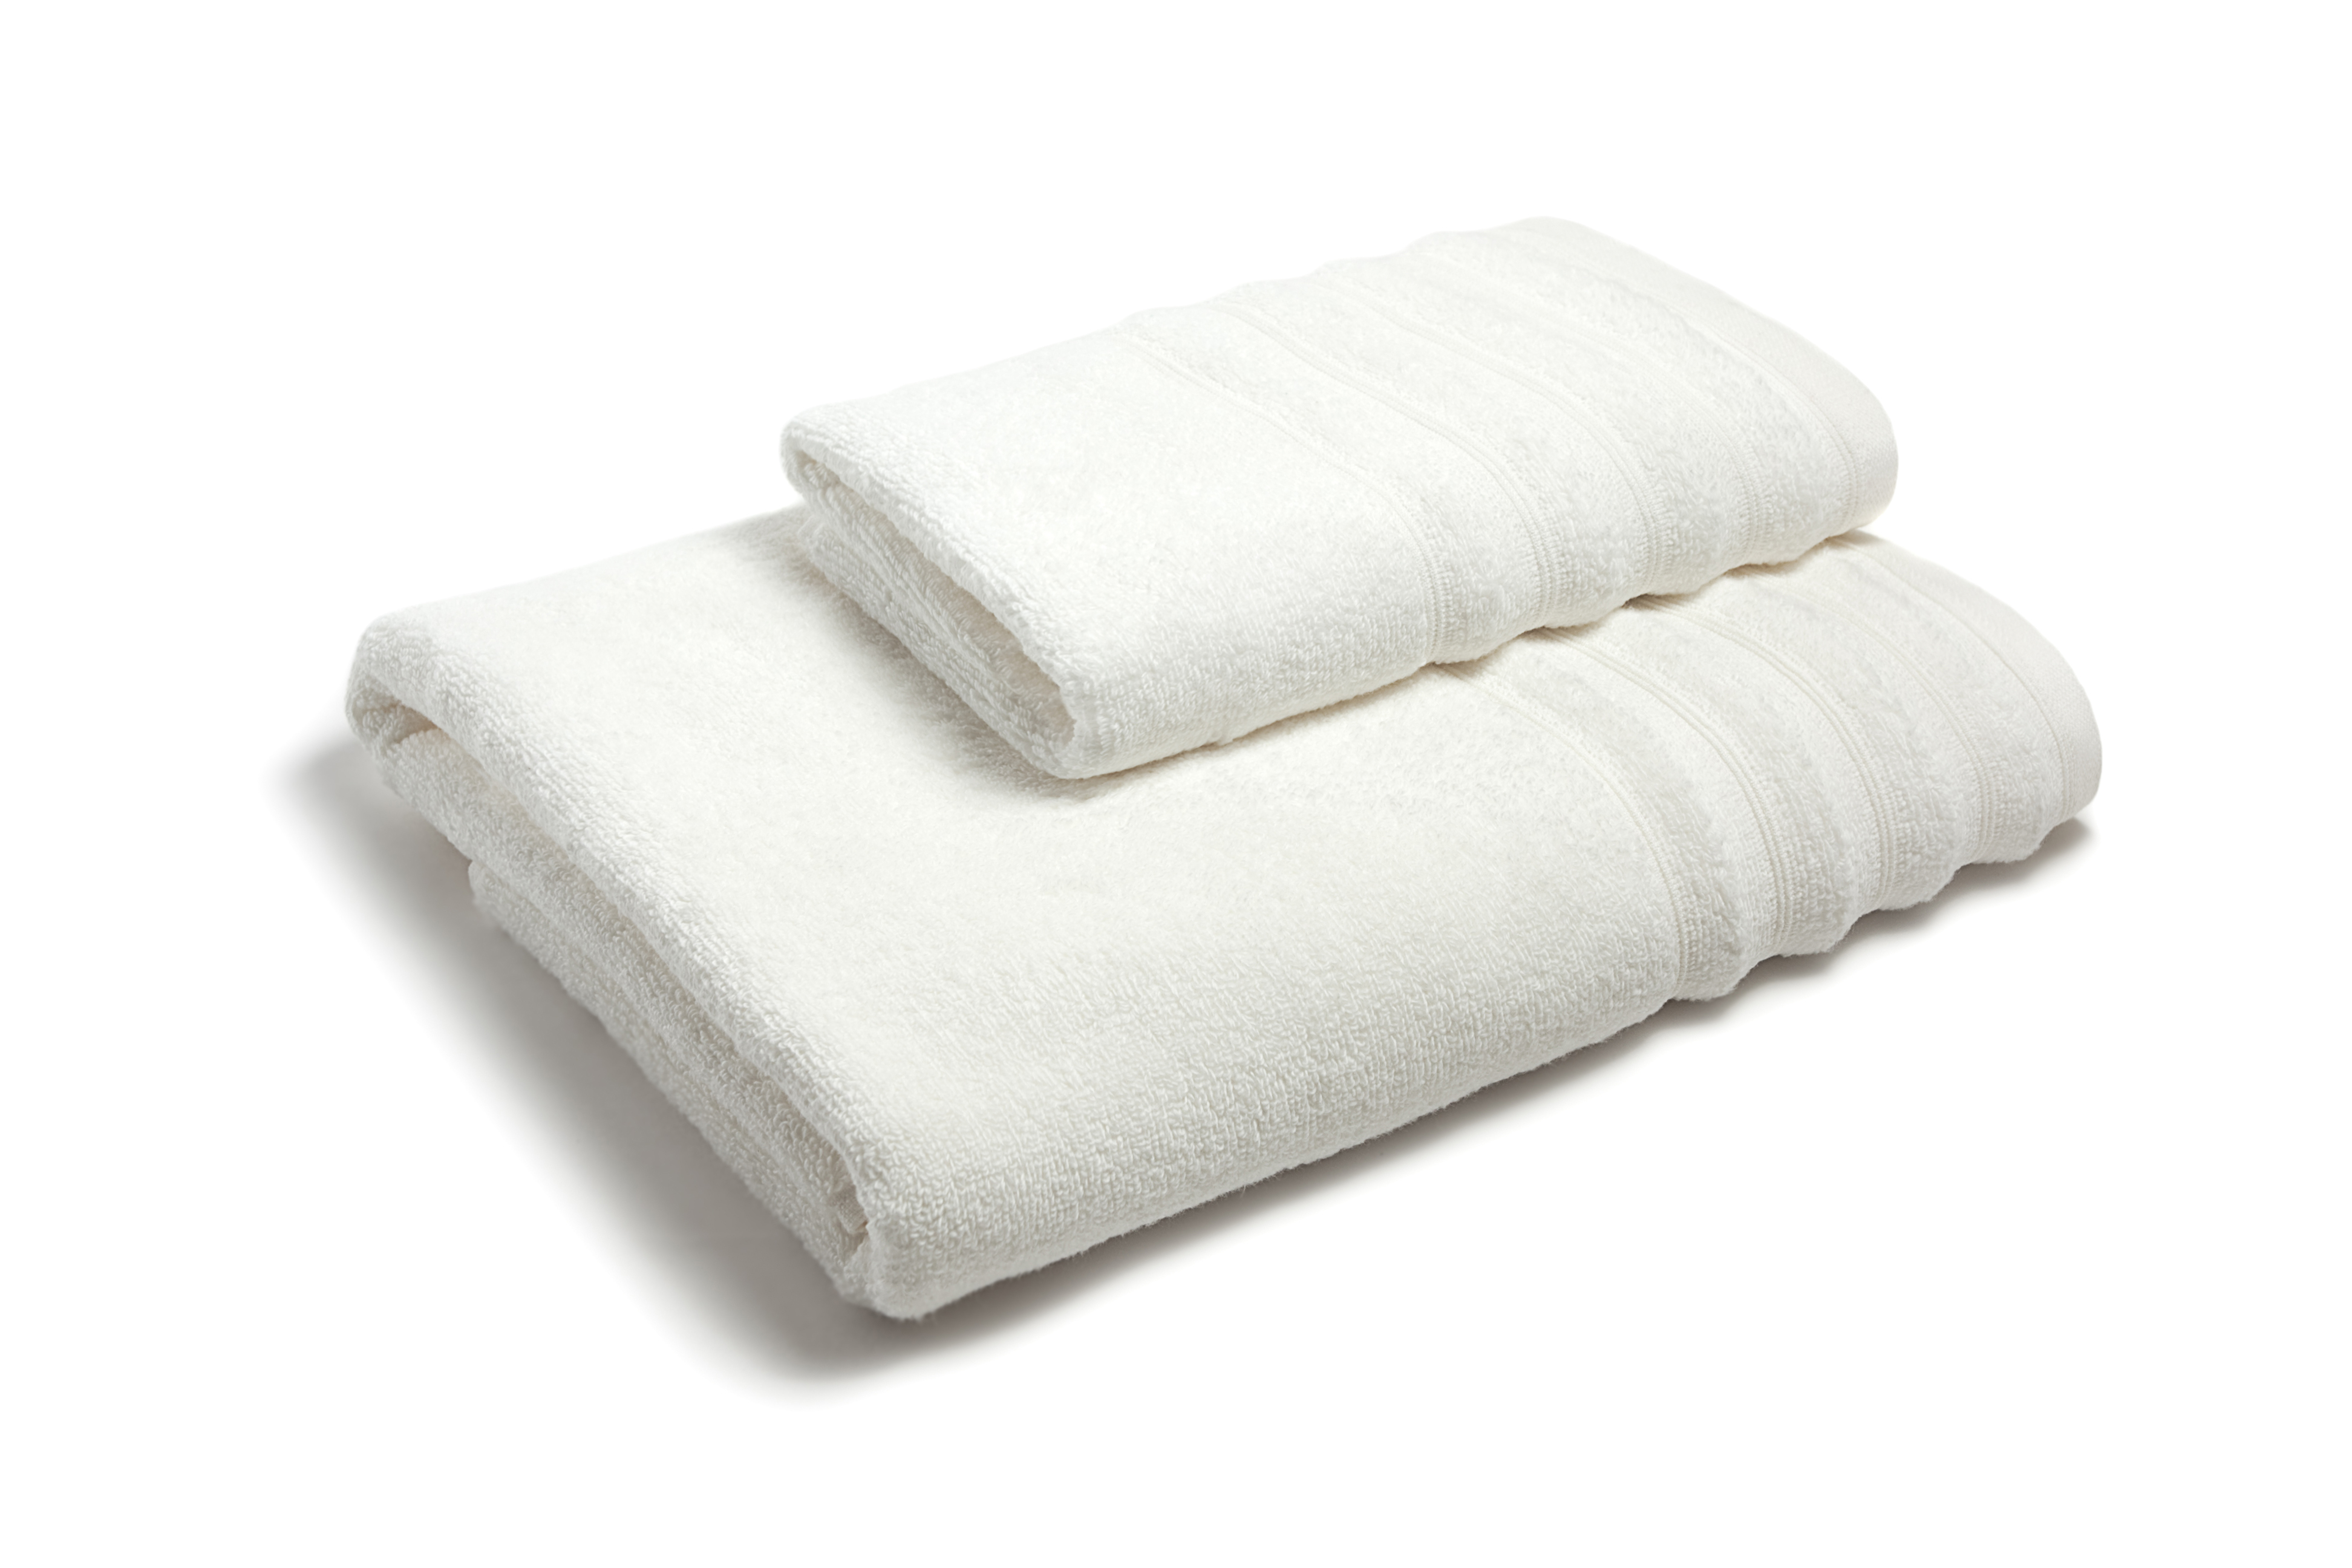 Zero twisted hotel towel with border